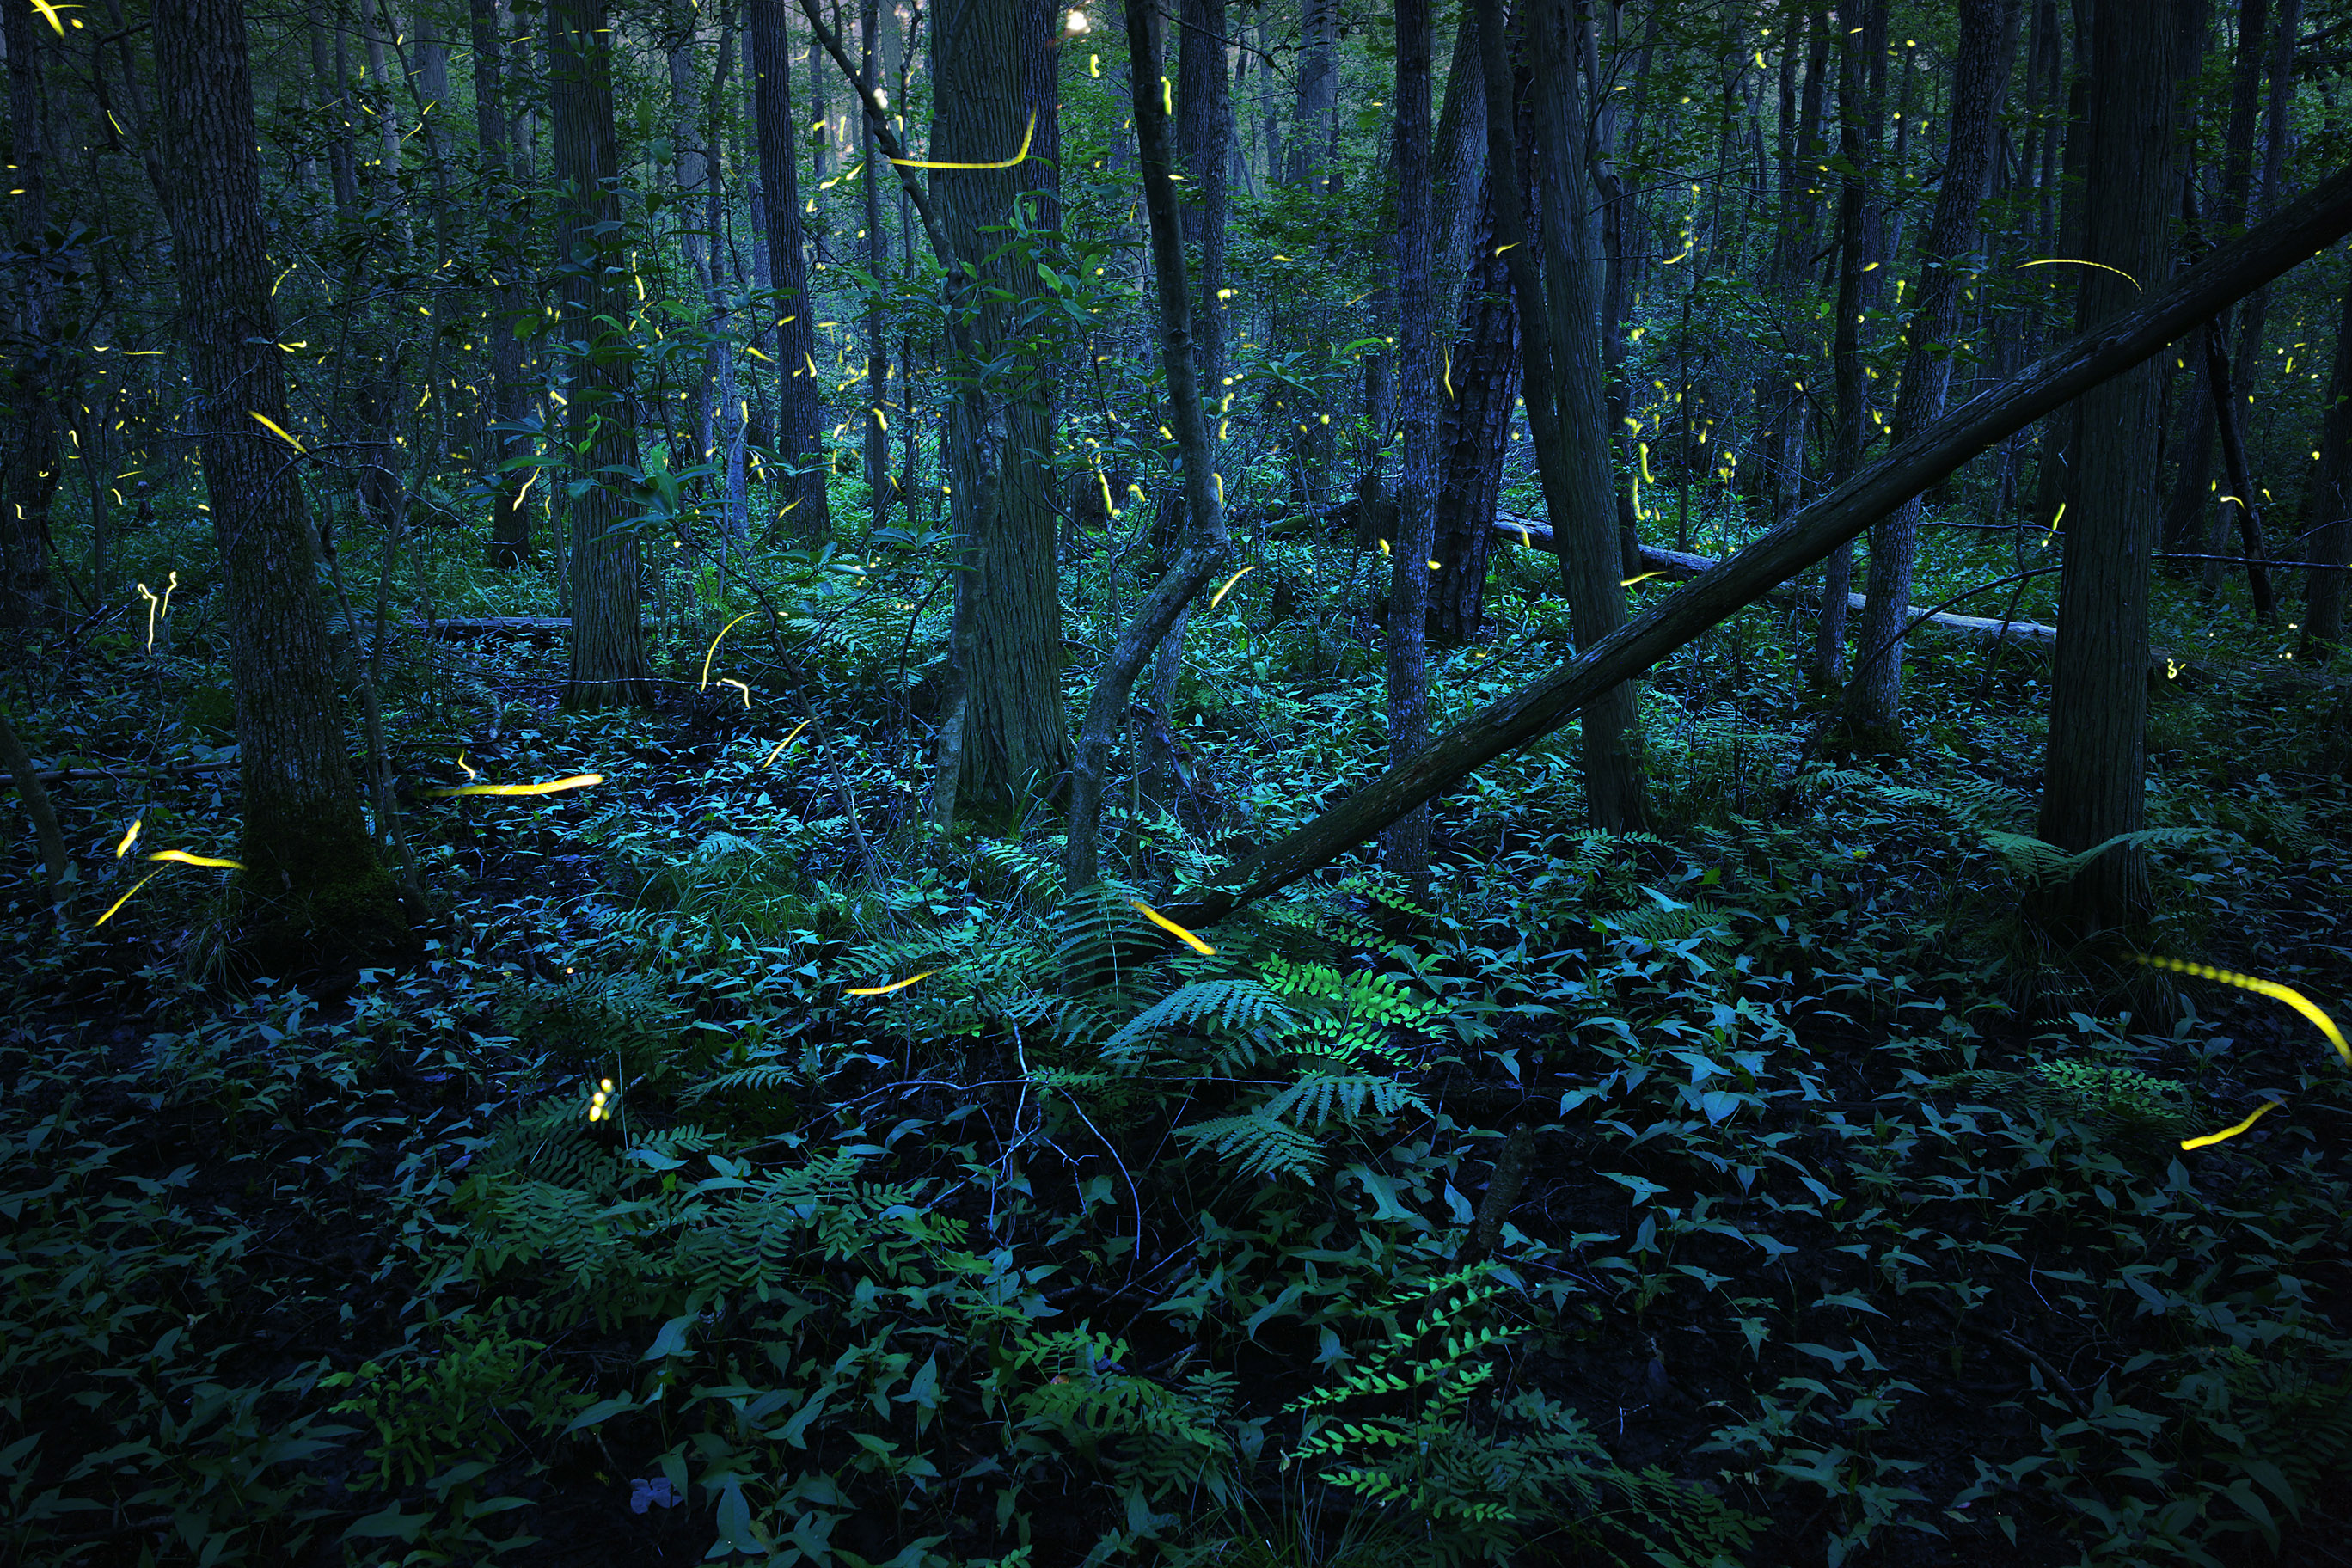 The flashing lights of a mass of fireflies add specks of light to this evening view of a forest